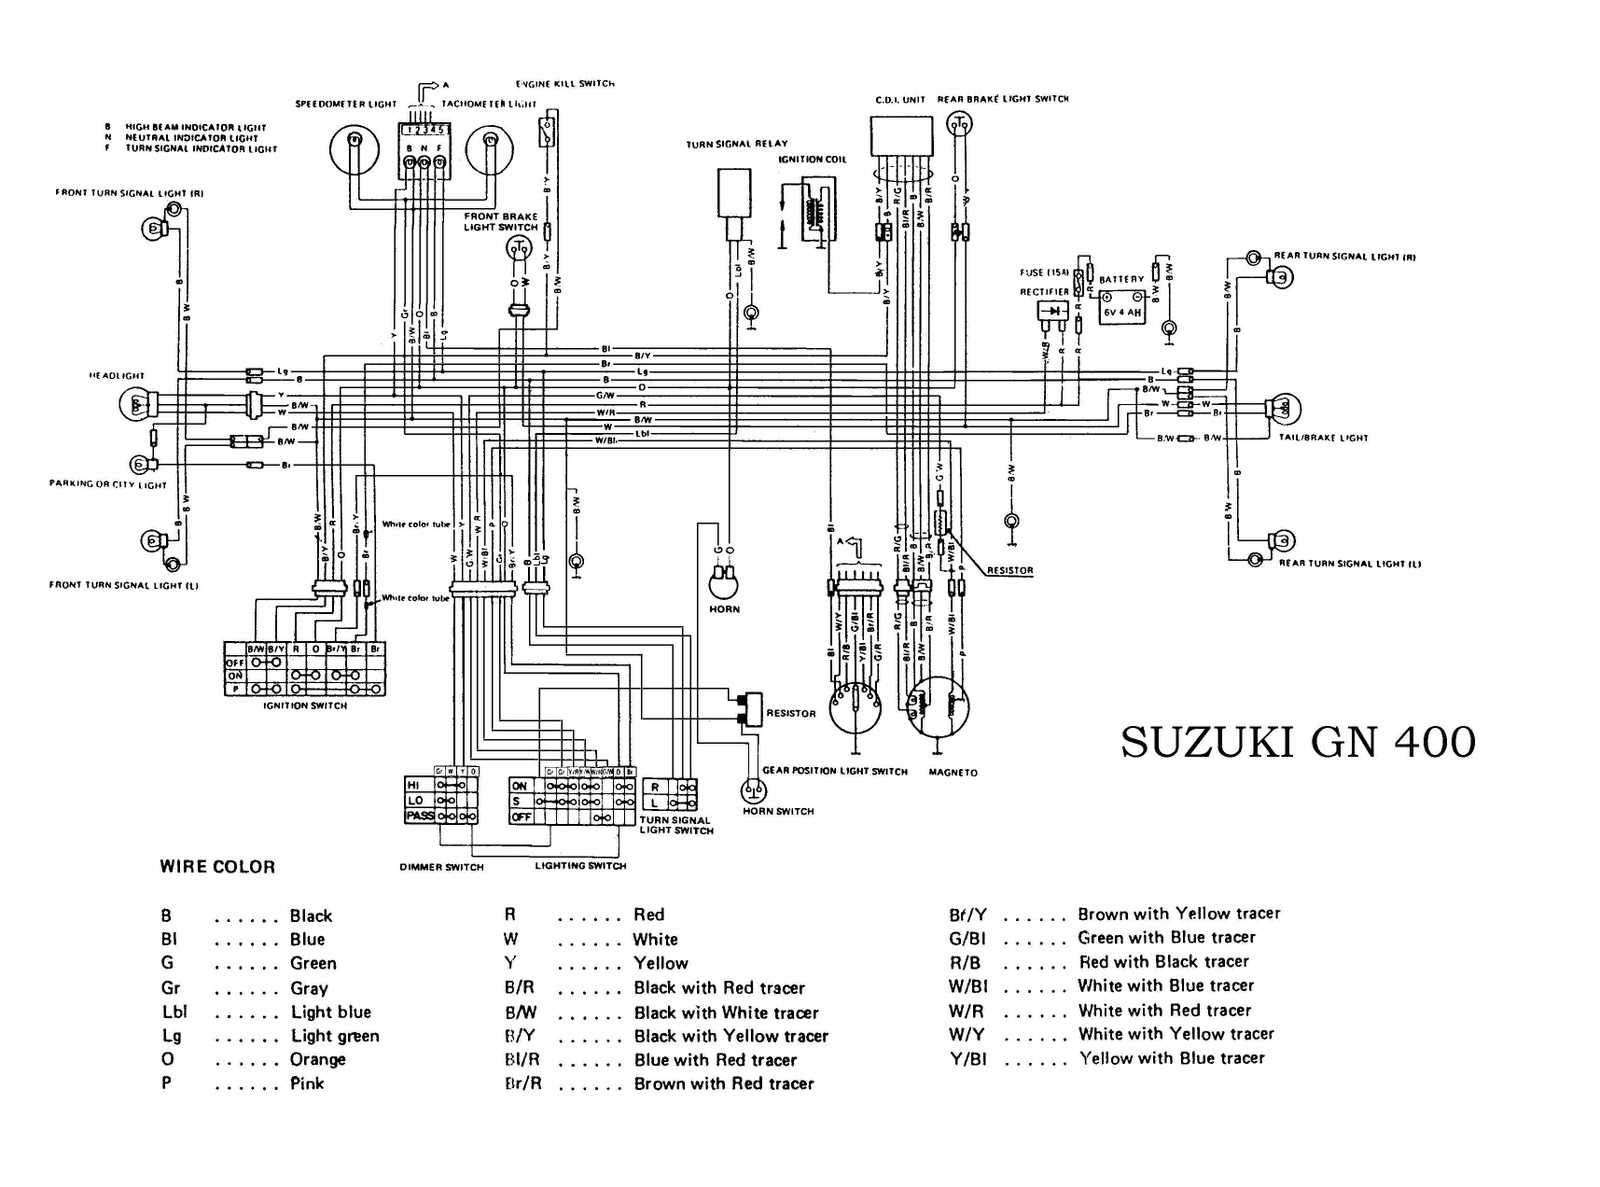 Suzuki+GN400+Electrical+Wiring+Diagram e38 wiring diagrams e67 wiring diagram wiring diagram ~ odicis e67 wiring diagram at mr168.co